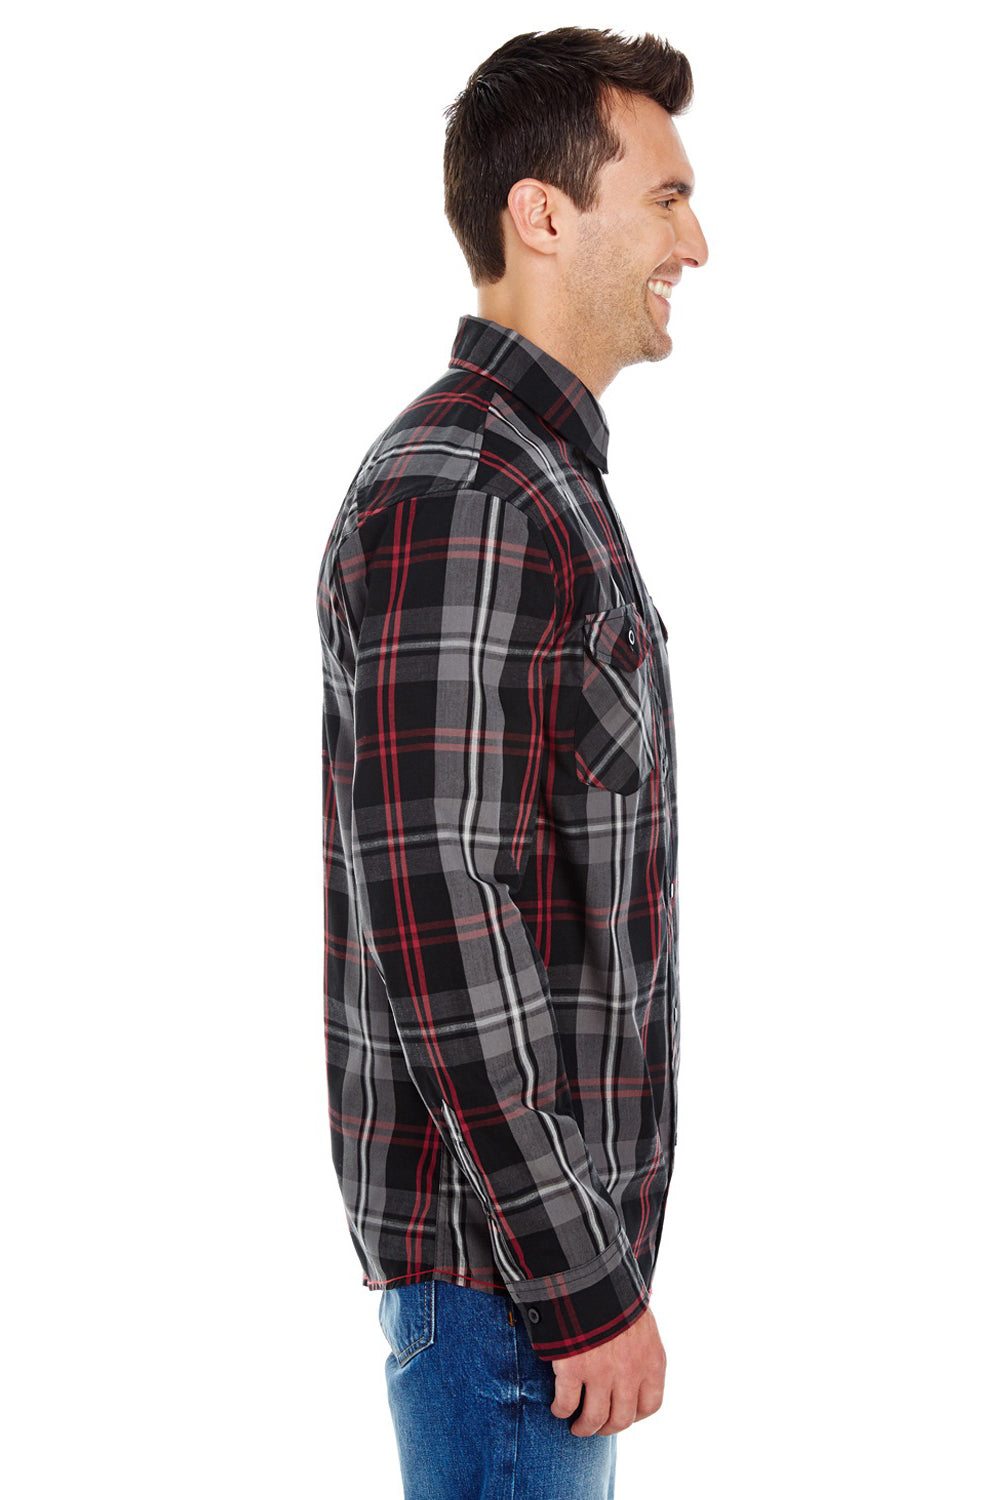 Burnside B8202 Mens Plaid Long Sleeve Button Down Shirt w/ Double Pockets Red/Black Side